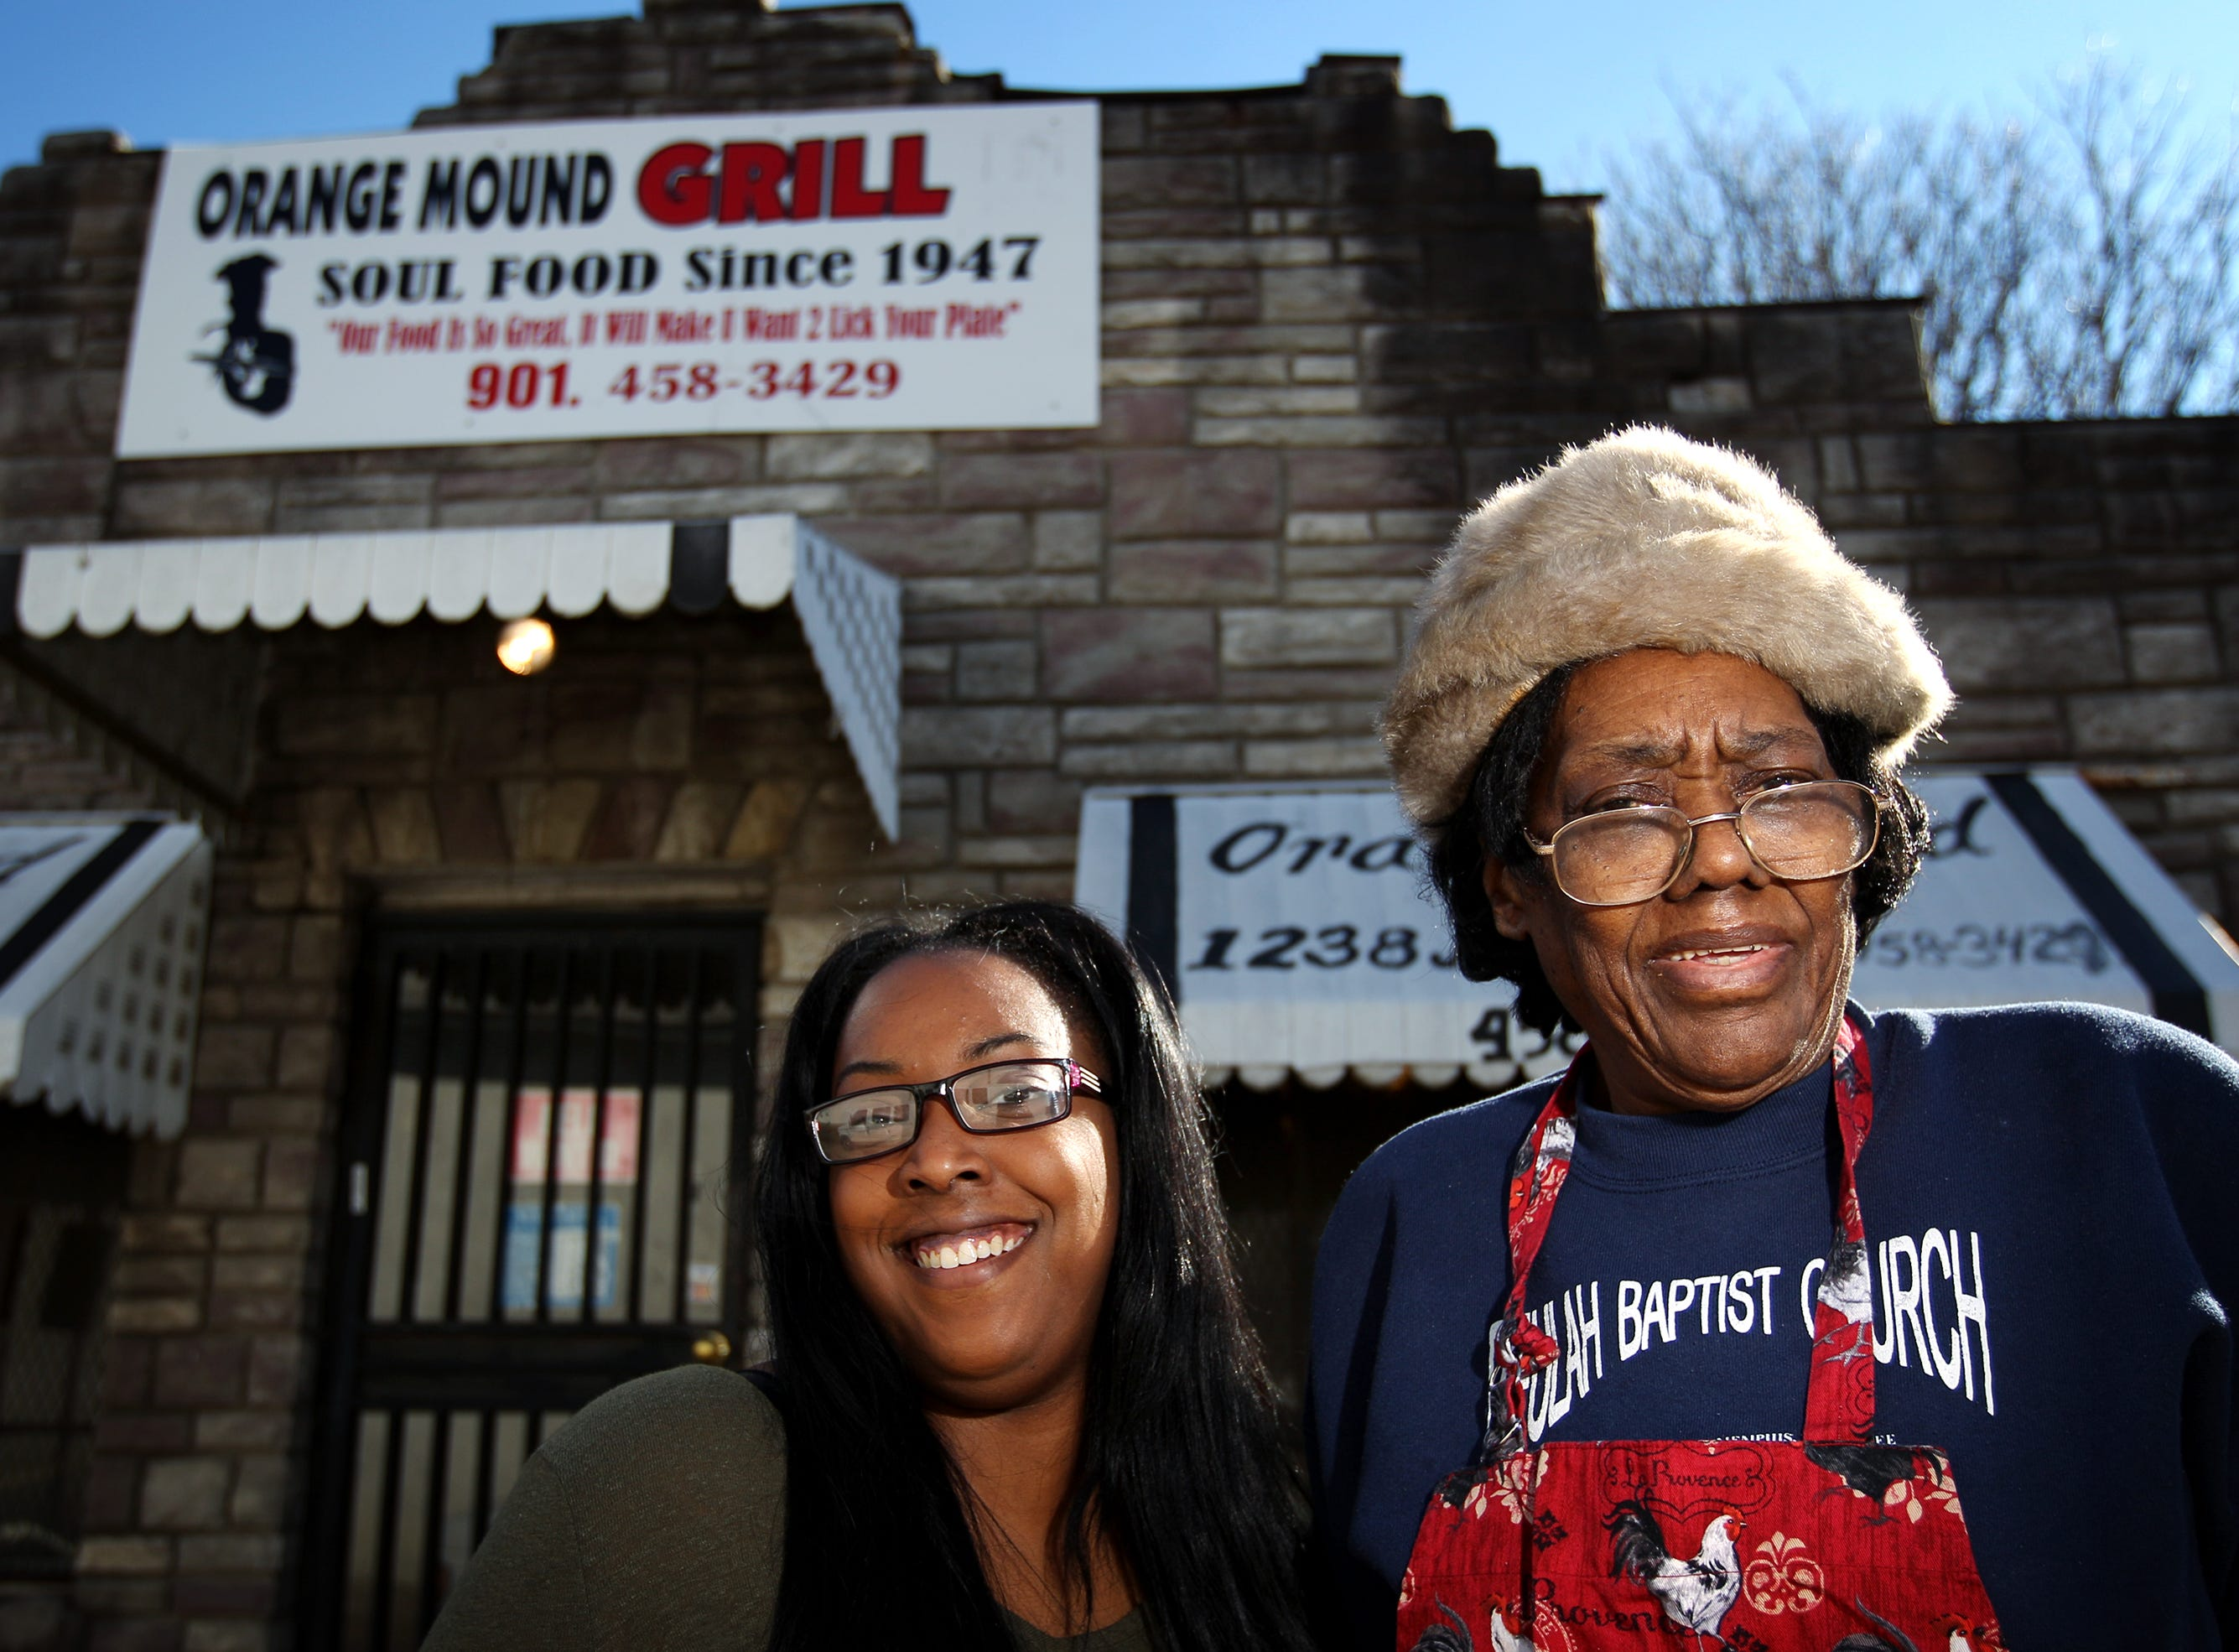 February 4, 2016 - Daisy Miller, 77, (right) stands outside her Orange Mound Grill with her granddaughter Hope Miller-Beck, 26. Miller has been working at the restaurant for 57 year and plans pass the torch to Miller-Beck when she eventually retires, which she plans to do in two years. (Mike Brown/The Commercial Appeal)